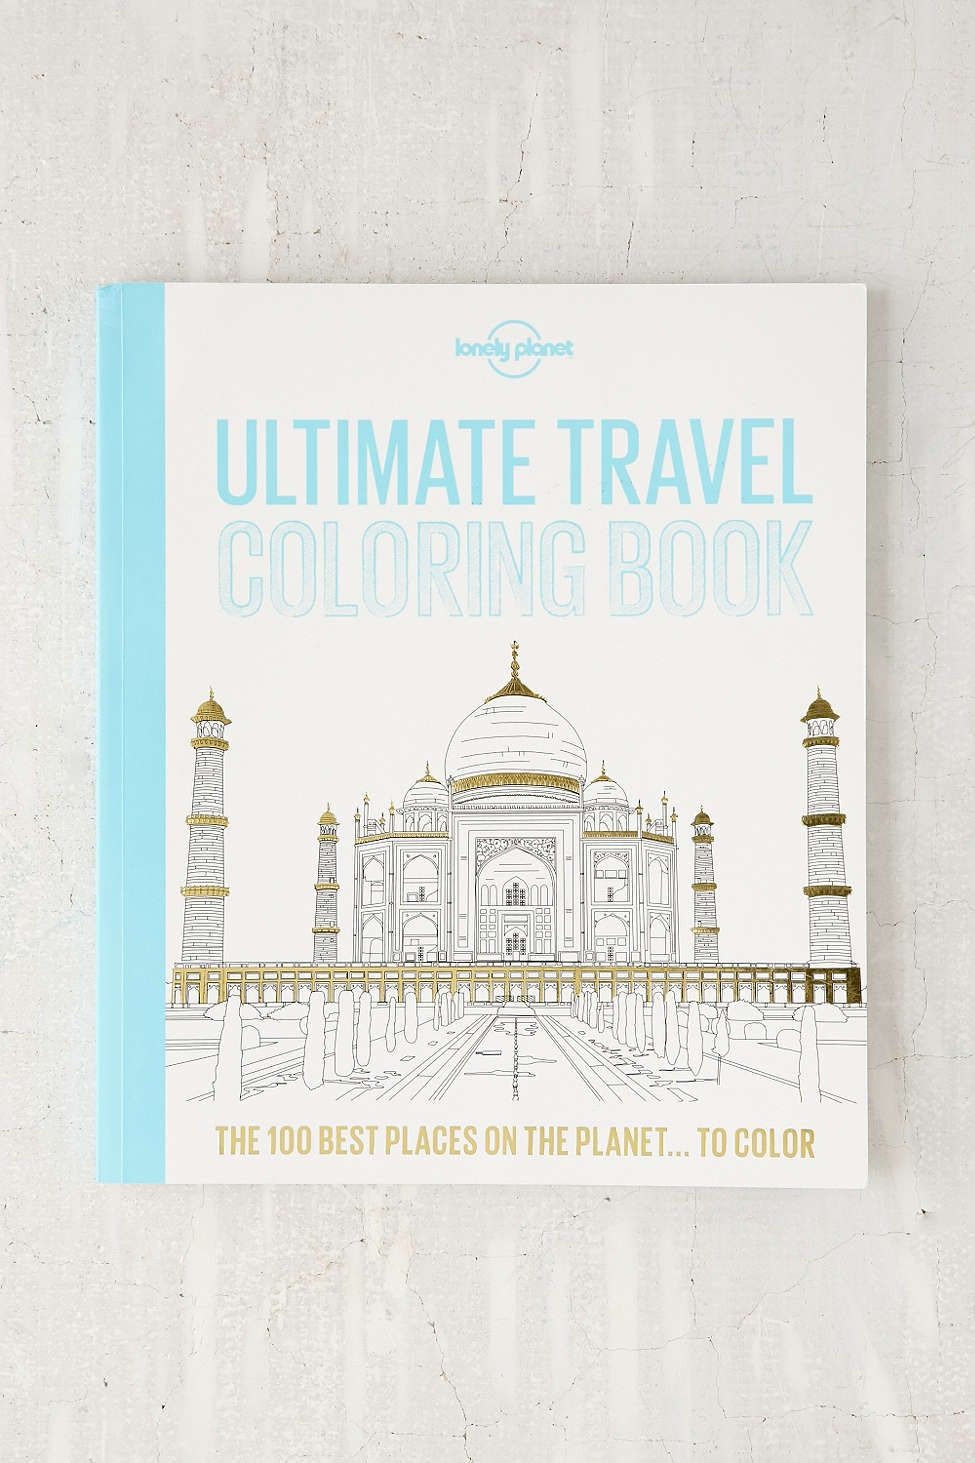 Ultimate Travel Coloring Book By Lonely Planet | Books, Journals ...